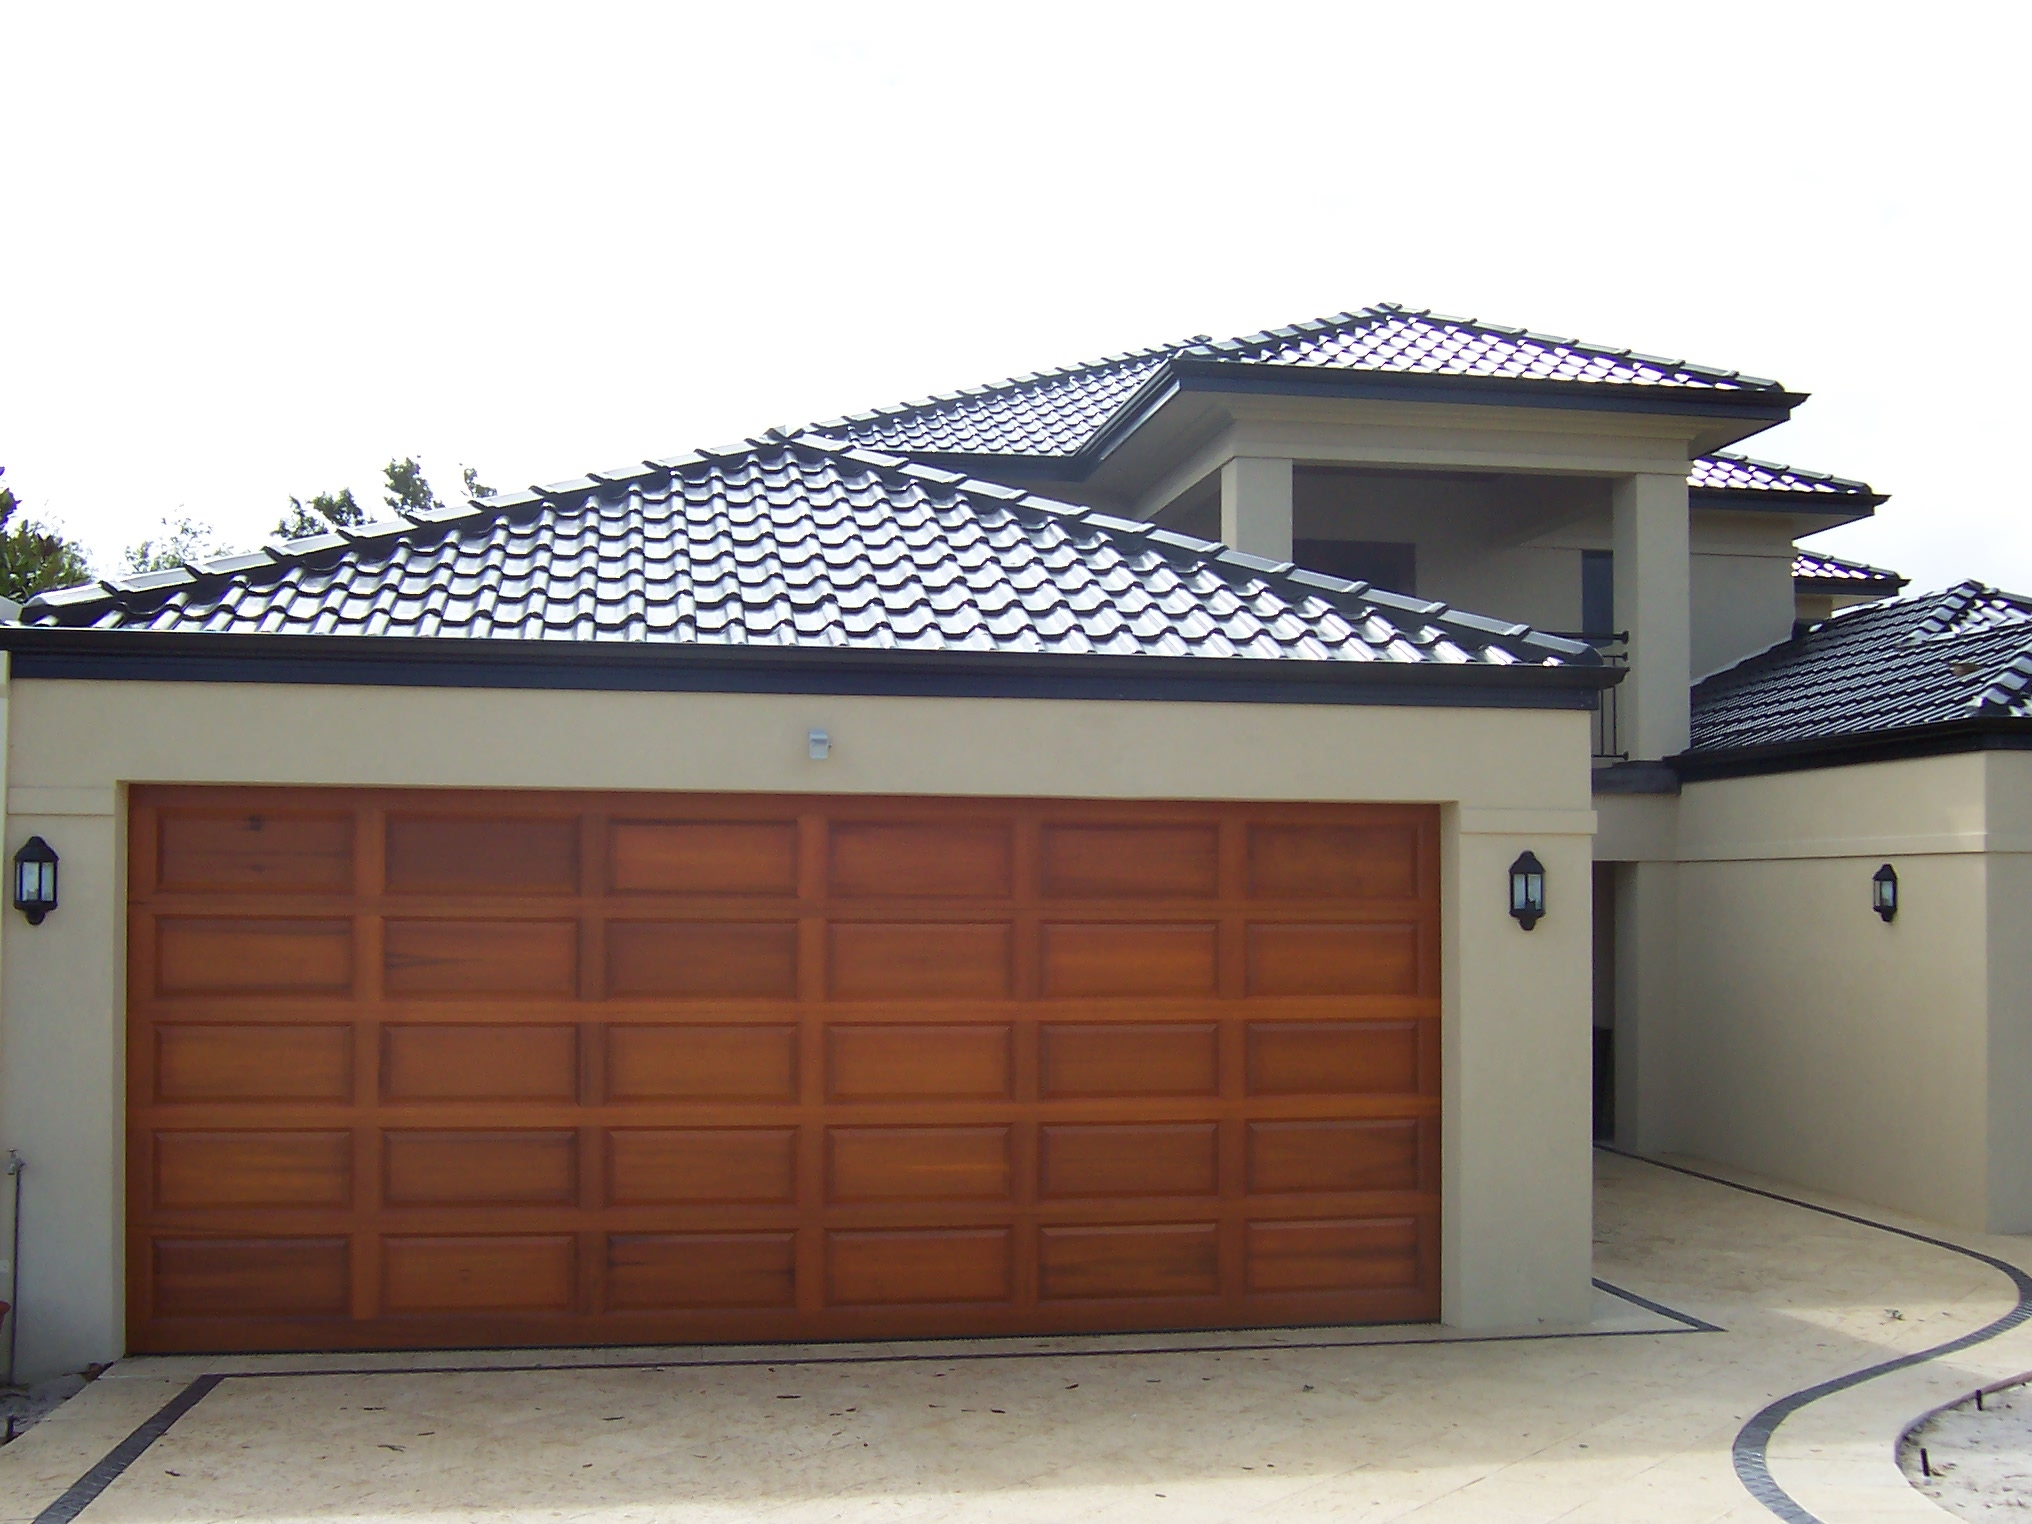 Superbe A Garage Door Specialist Is A Tradesperson Skilled In The Installation,  Maintenance And Repair Of Garage Doors And Electrical Gates.